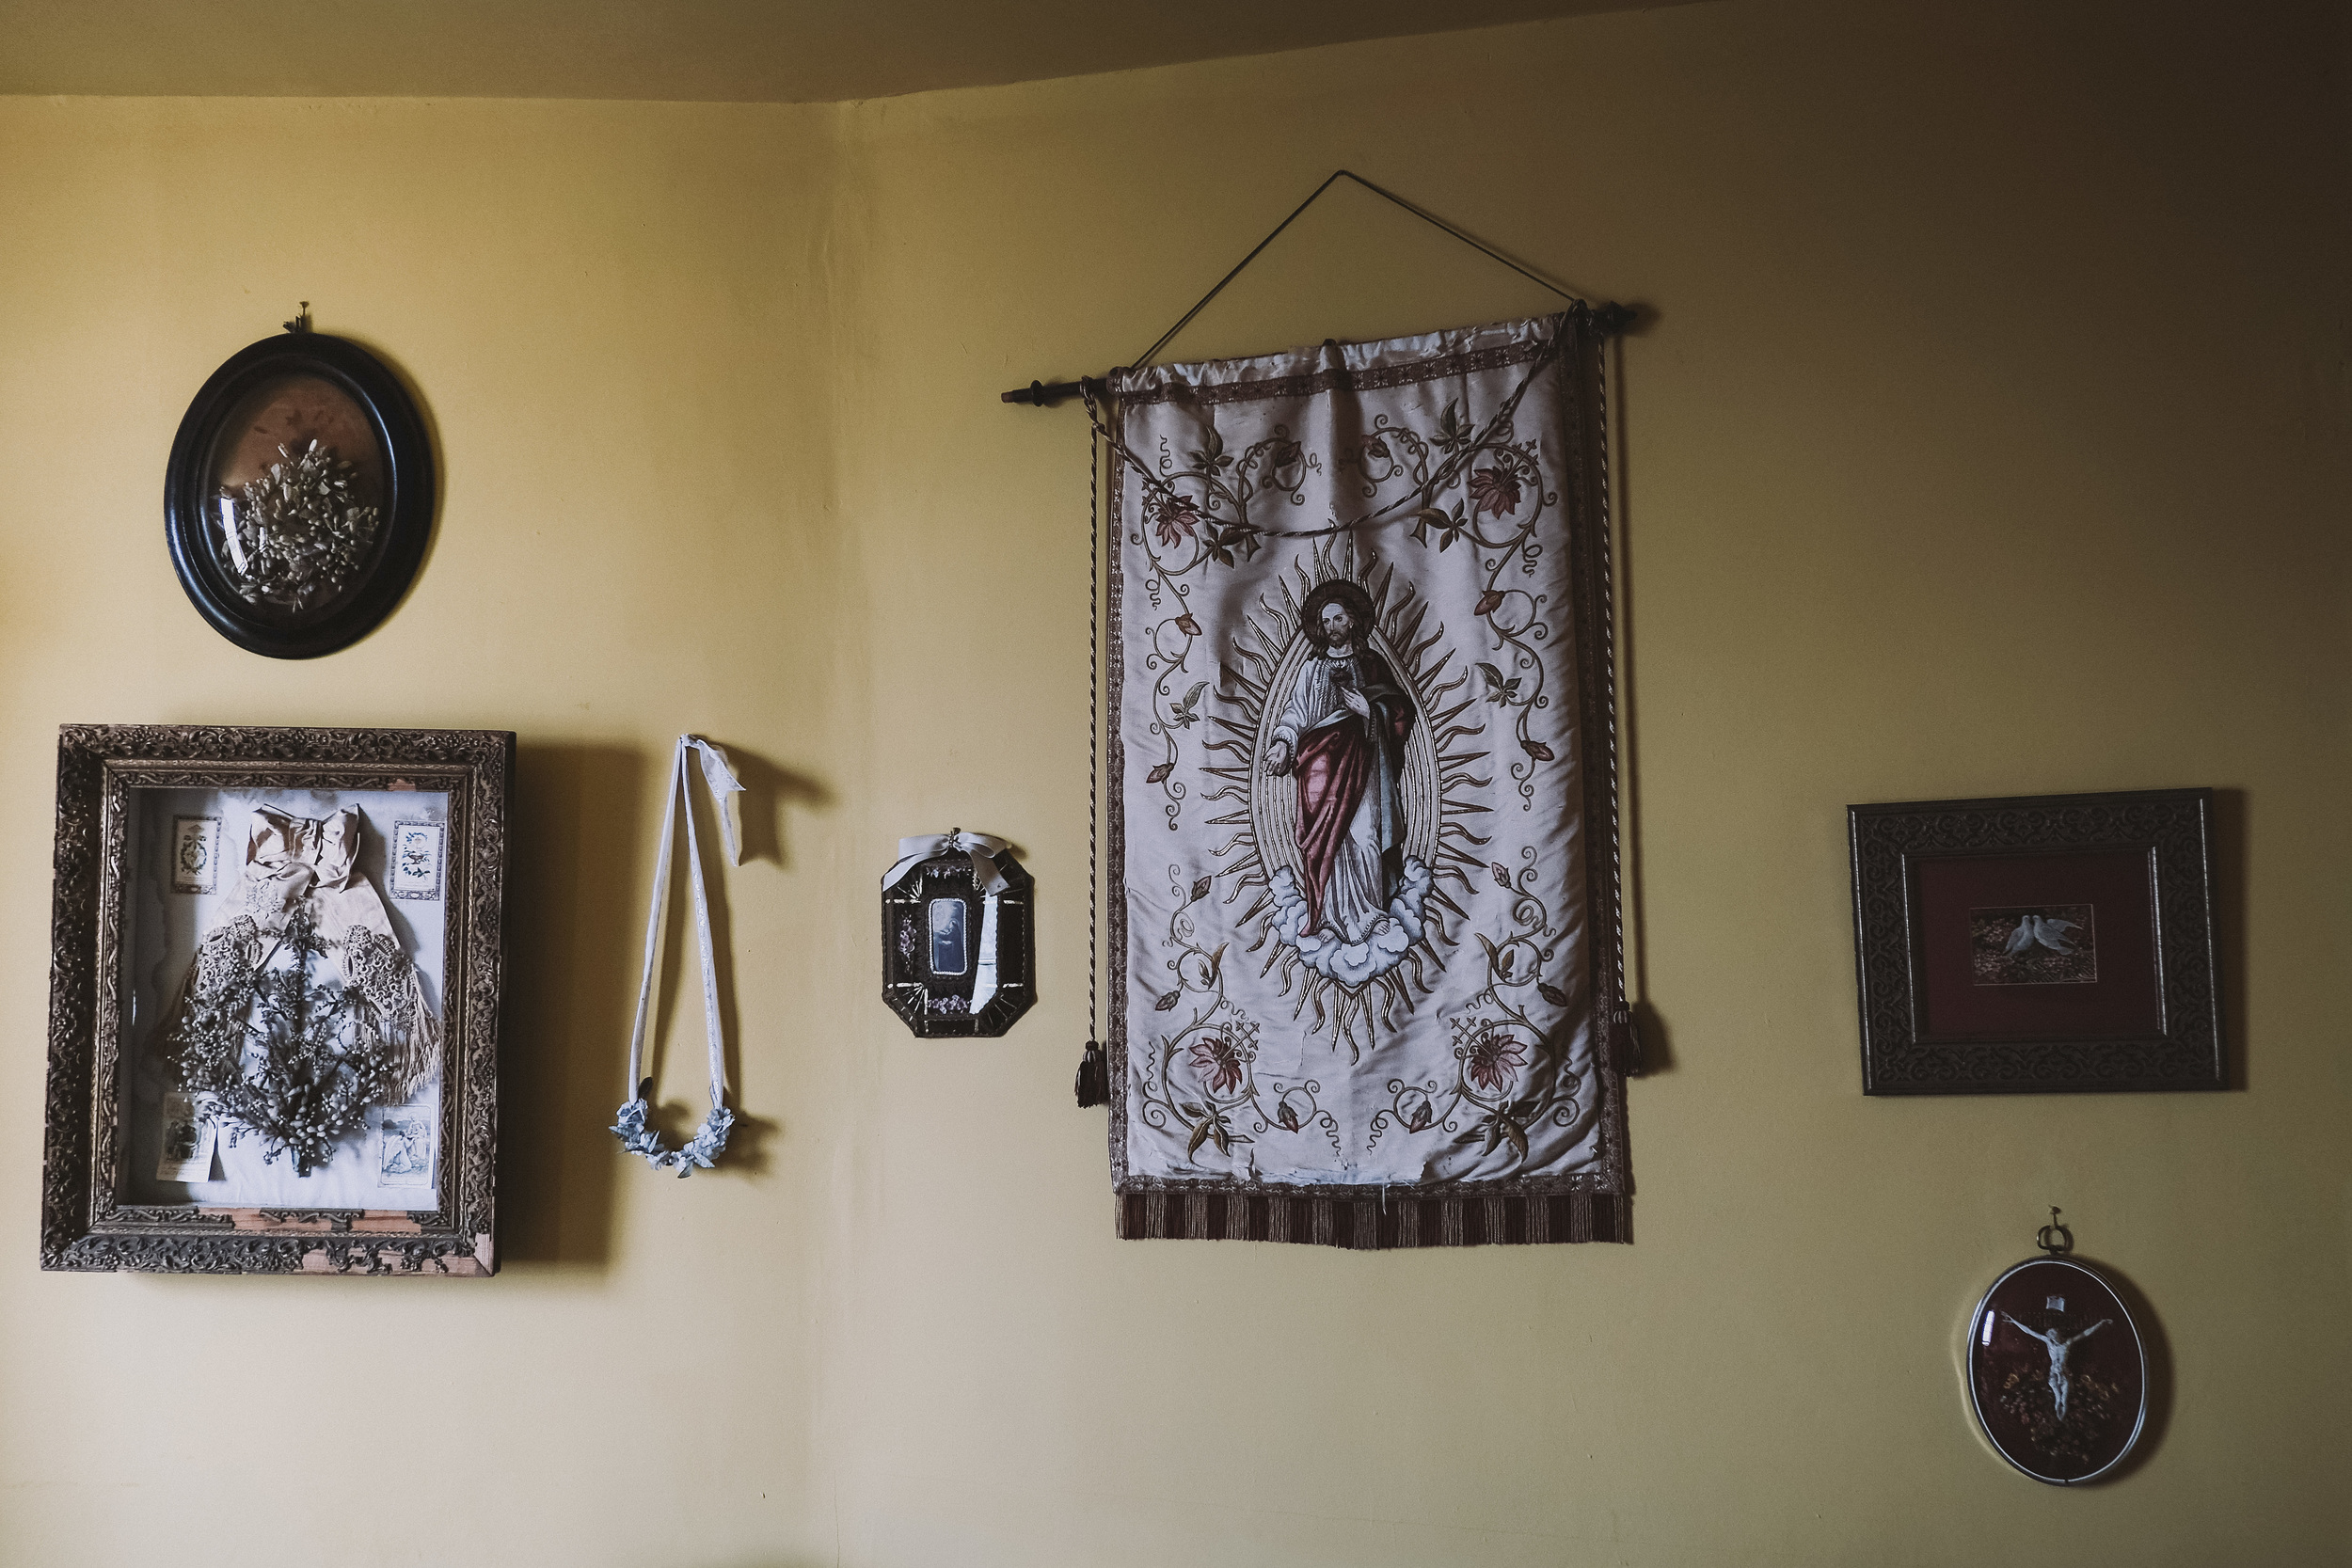 La Rosa Hotel Whitby // Sacre Coeur Room Wall Hangings // By Wedding Photographer Barry Forshaw